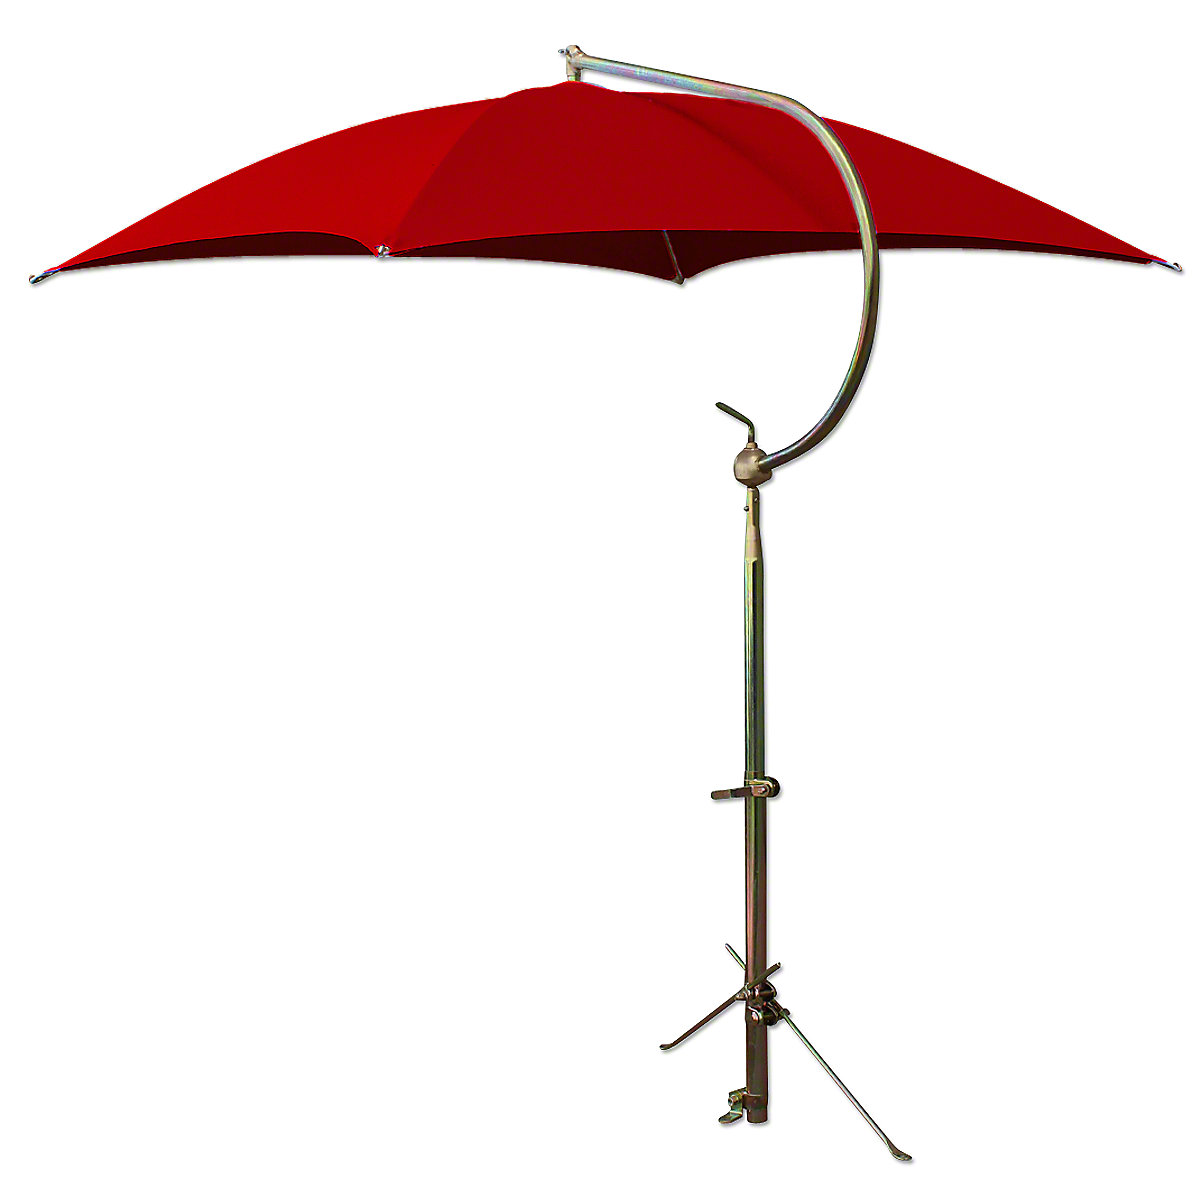 Deluxe Red Tractor Umbrella With Mounting Brackets.